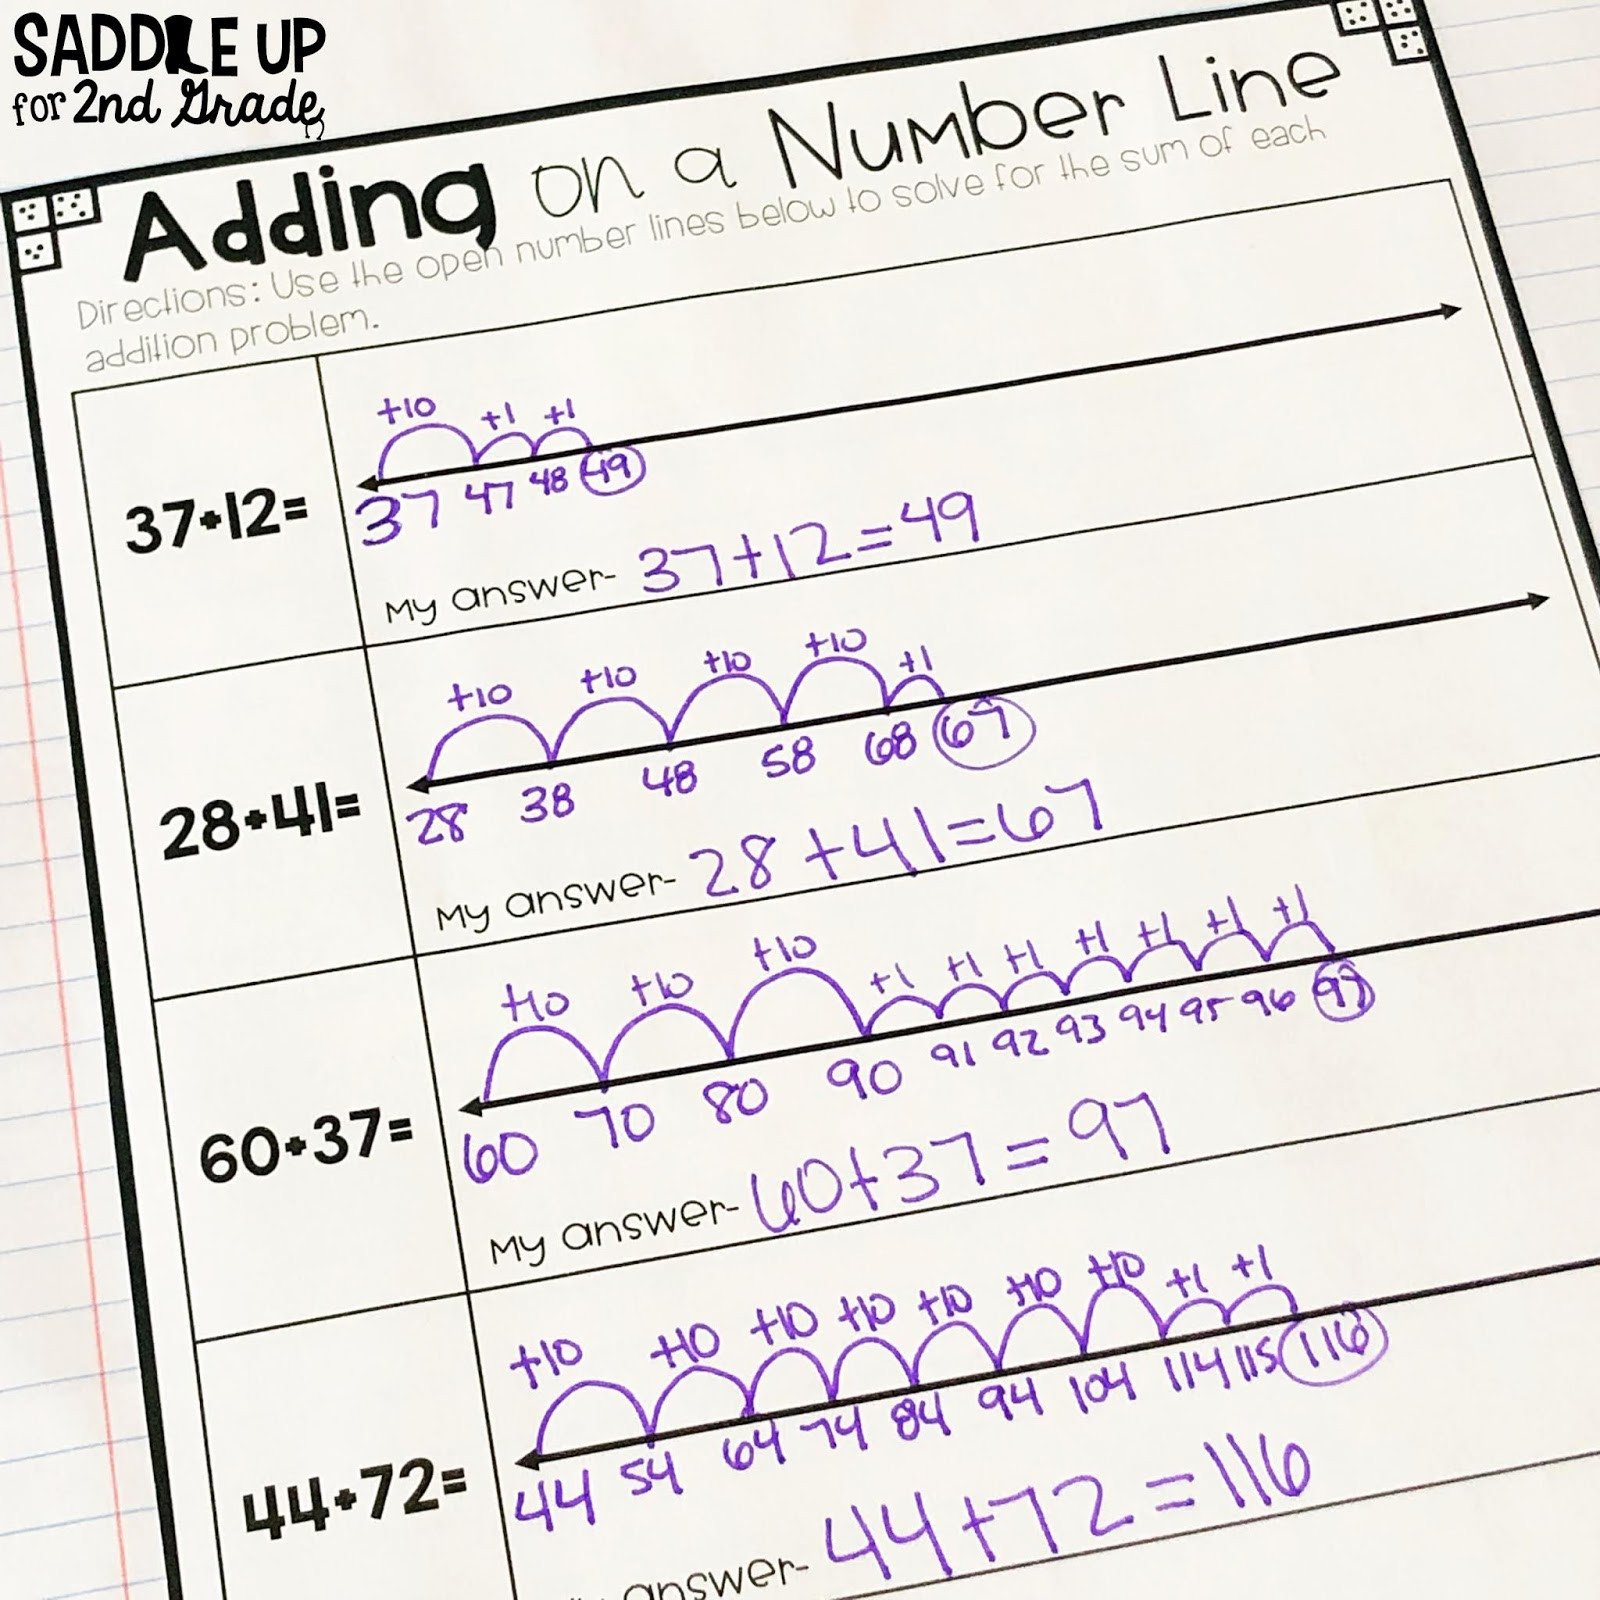 20 Open Number Line Addition Worksheet